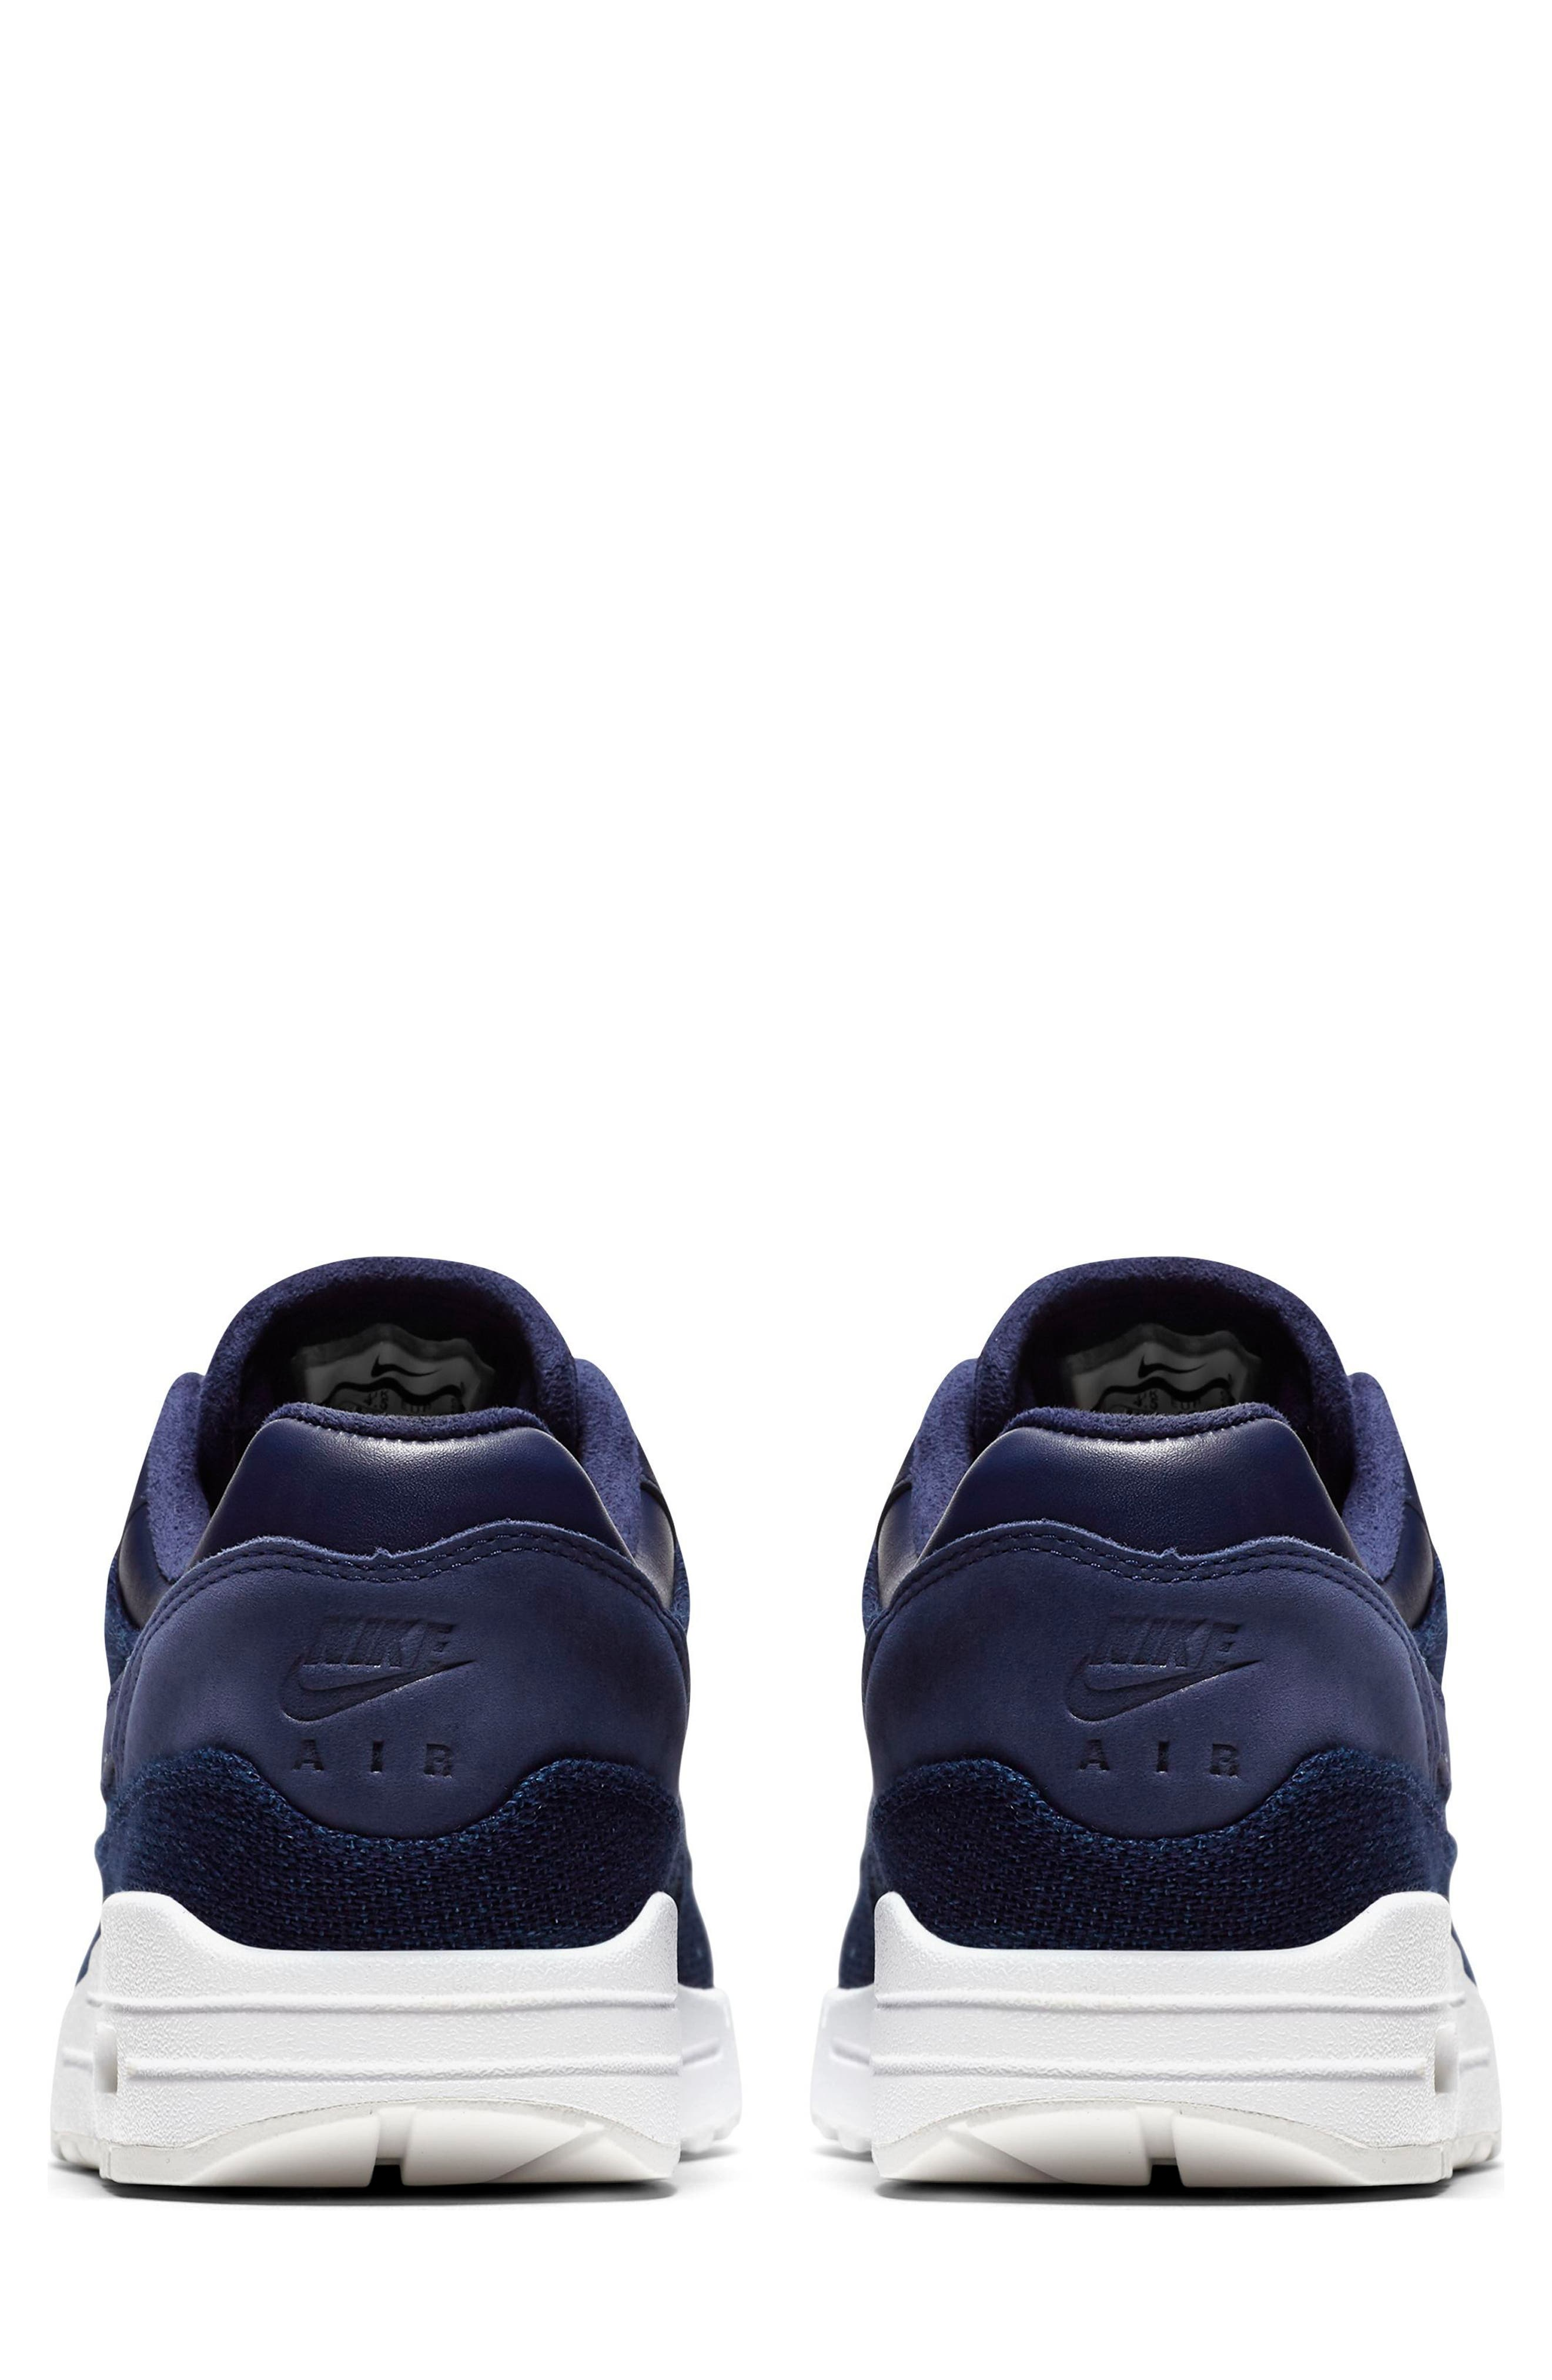 Air Max 1 Lux Sneaker,                             Alternate thumbnail 5, color,                             Binary Blue/ White/ Stout